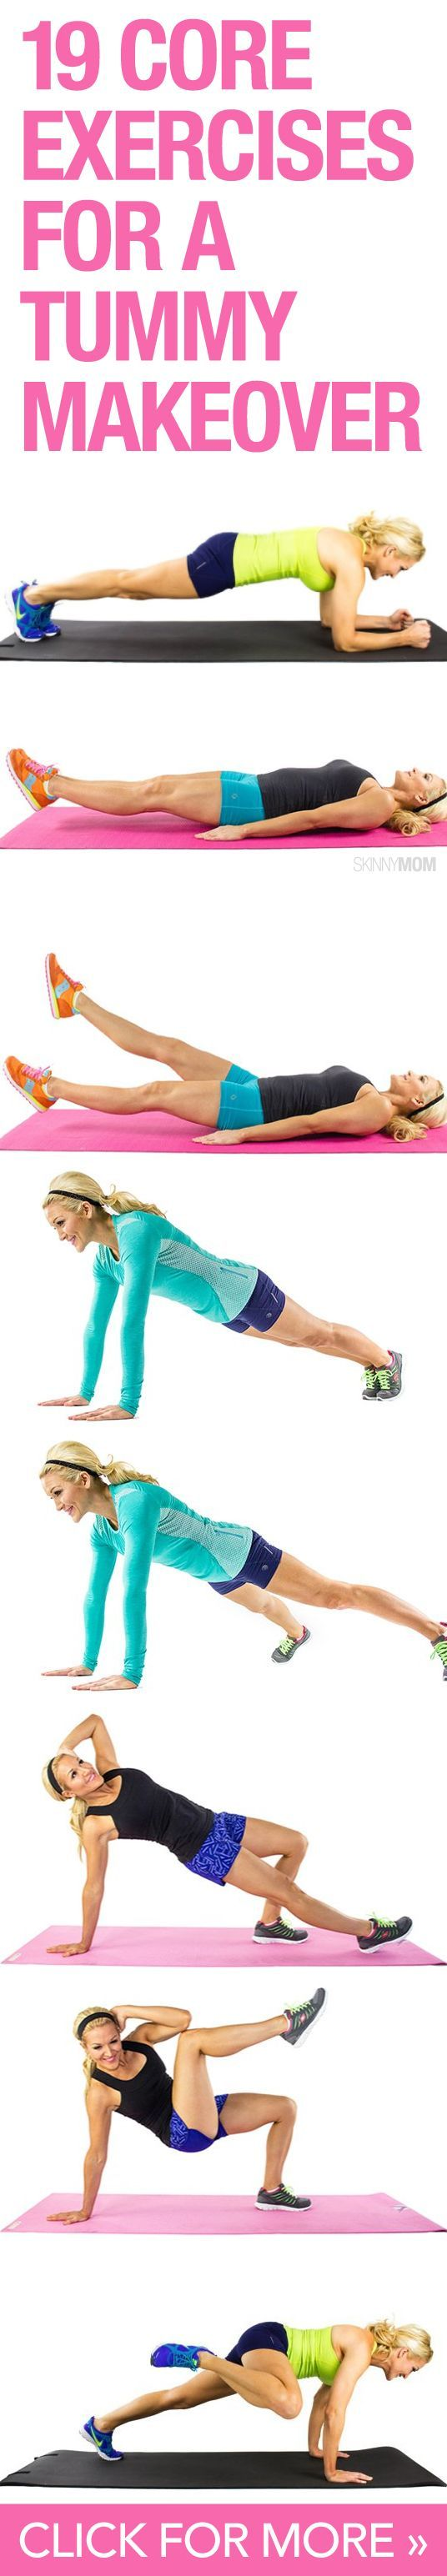 Core exercise ideas